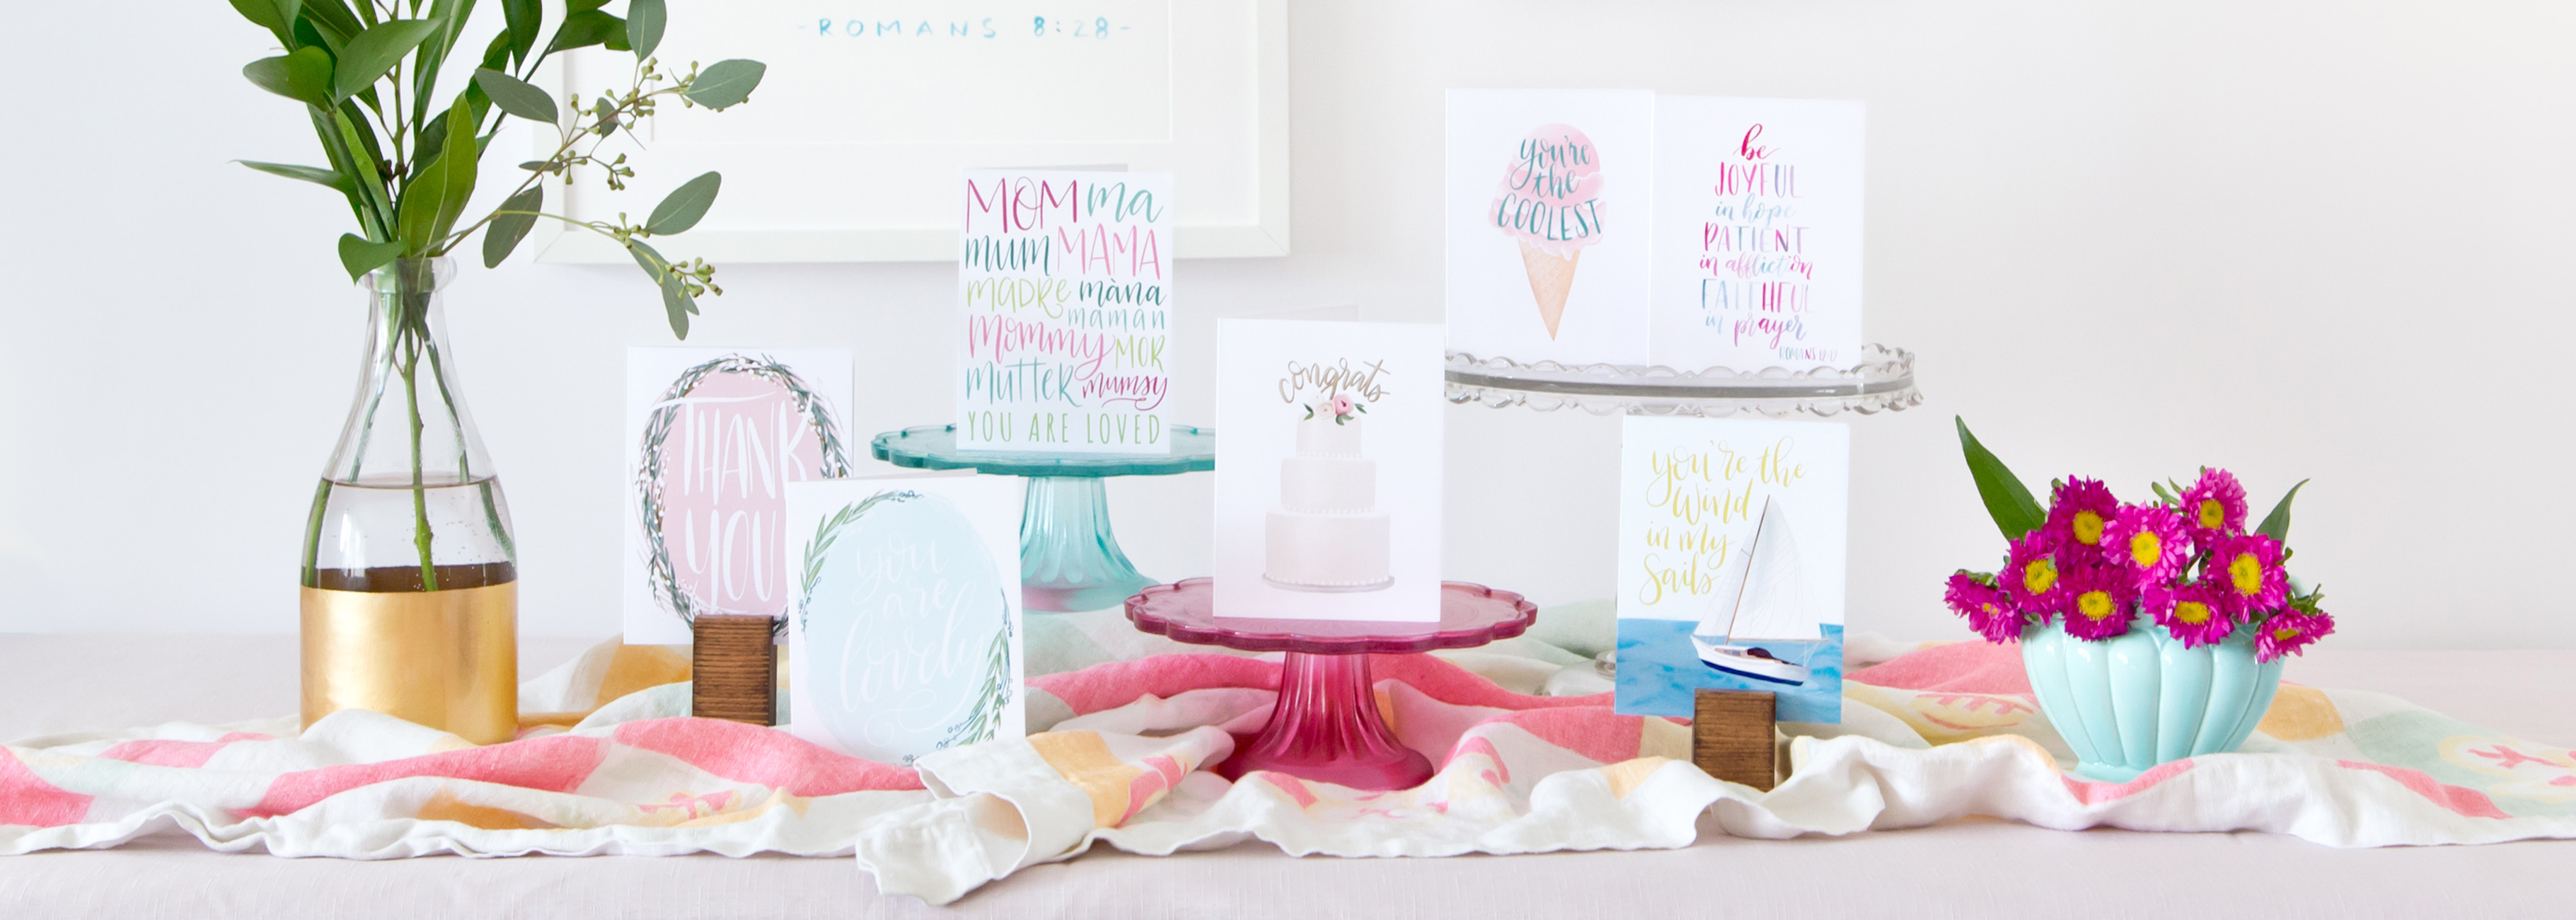 Wholesale Stationery and Art Prints